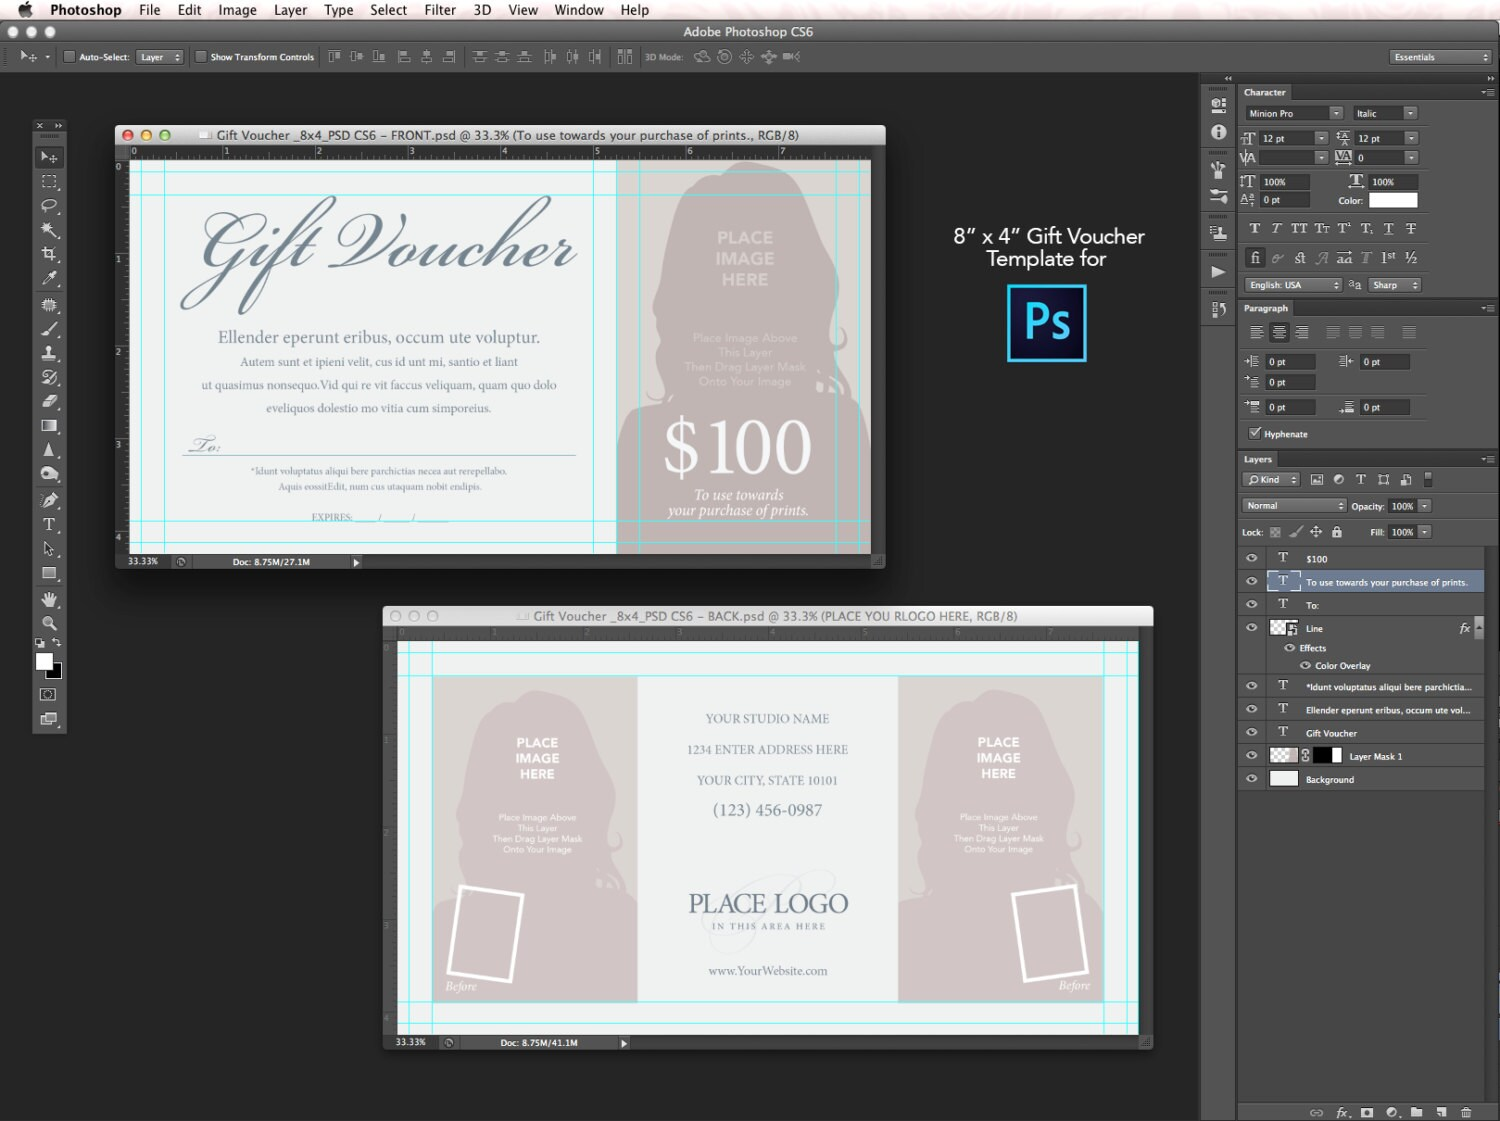 8x4 gift voucher template for photoshop cs6 zoom yelopaper Choice Image